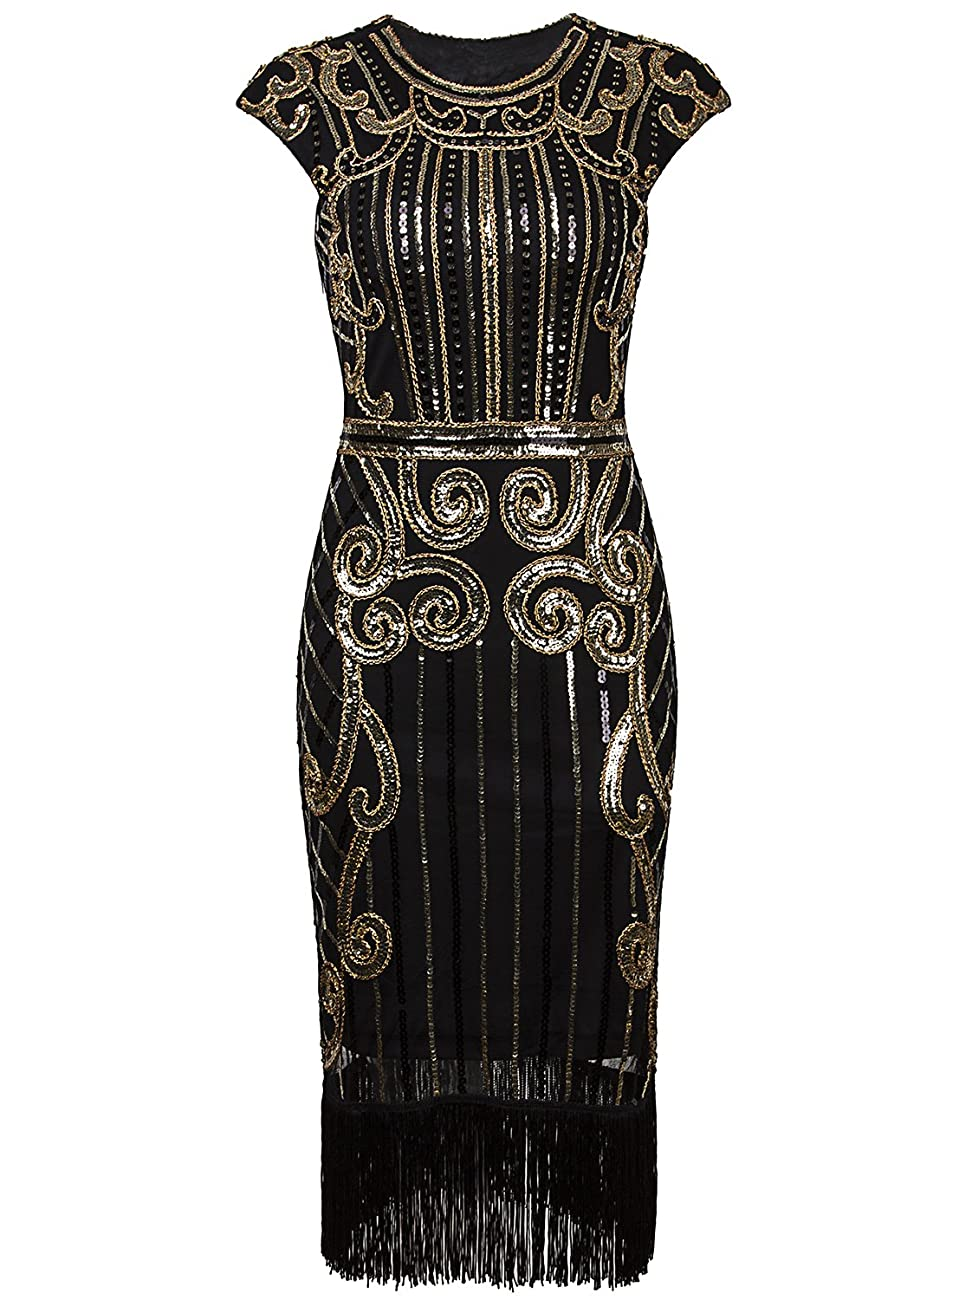 Vijiv 1920s Vintage Inspired Sequin Embellished Fringe Long Gatsby Flapper Dress 1